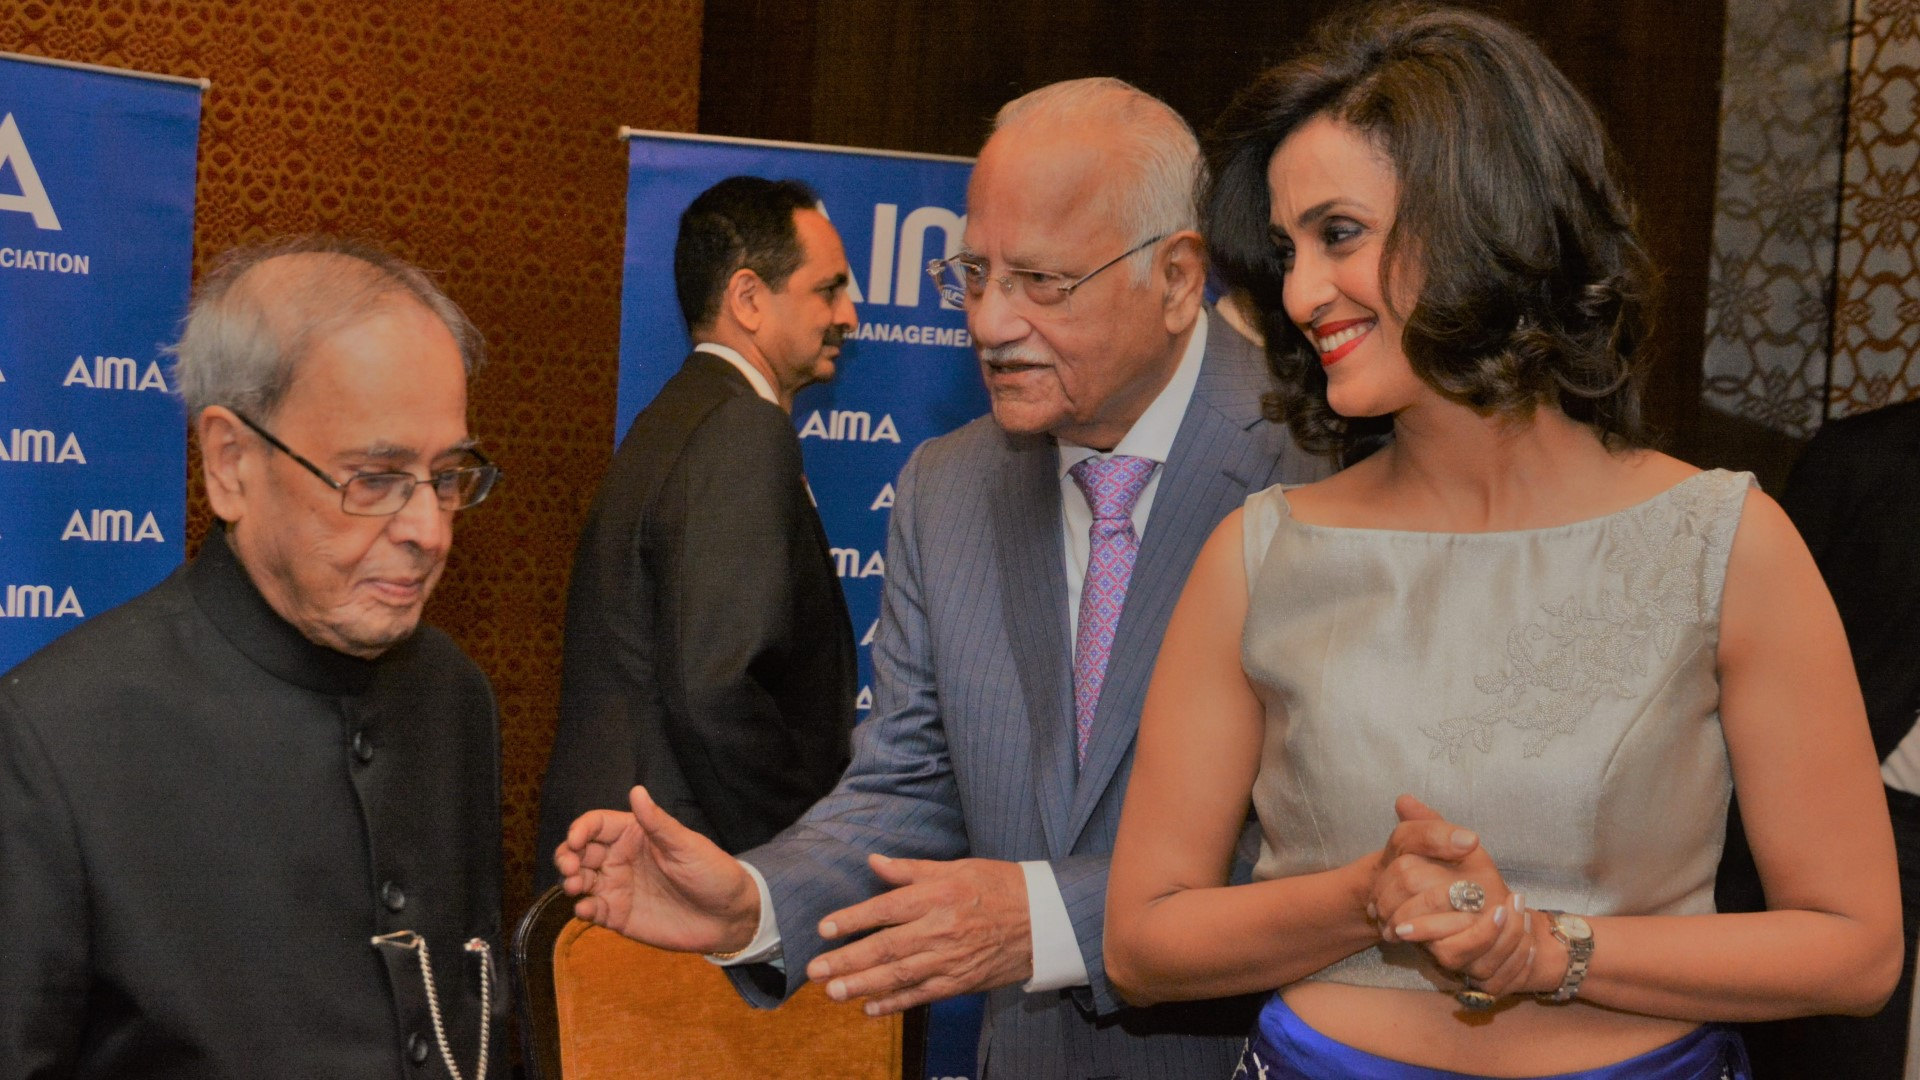 Shivani with President Pranab Mukherjee at the AIMA Awards ceremony